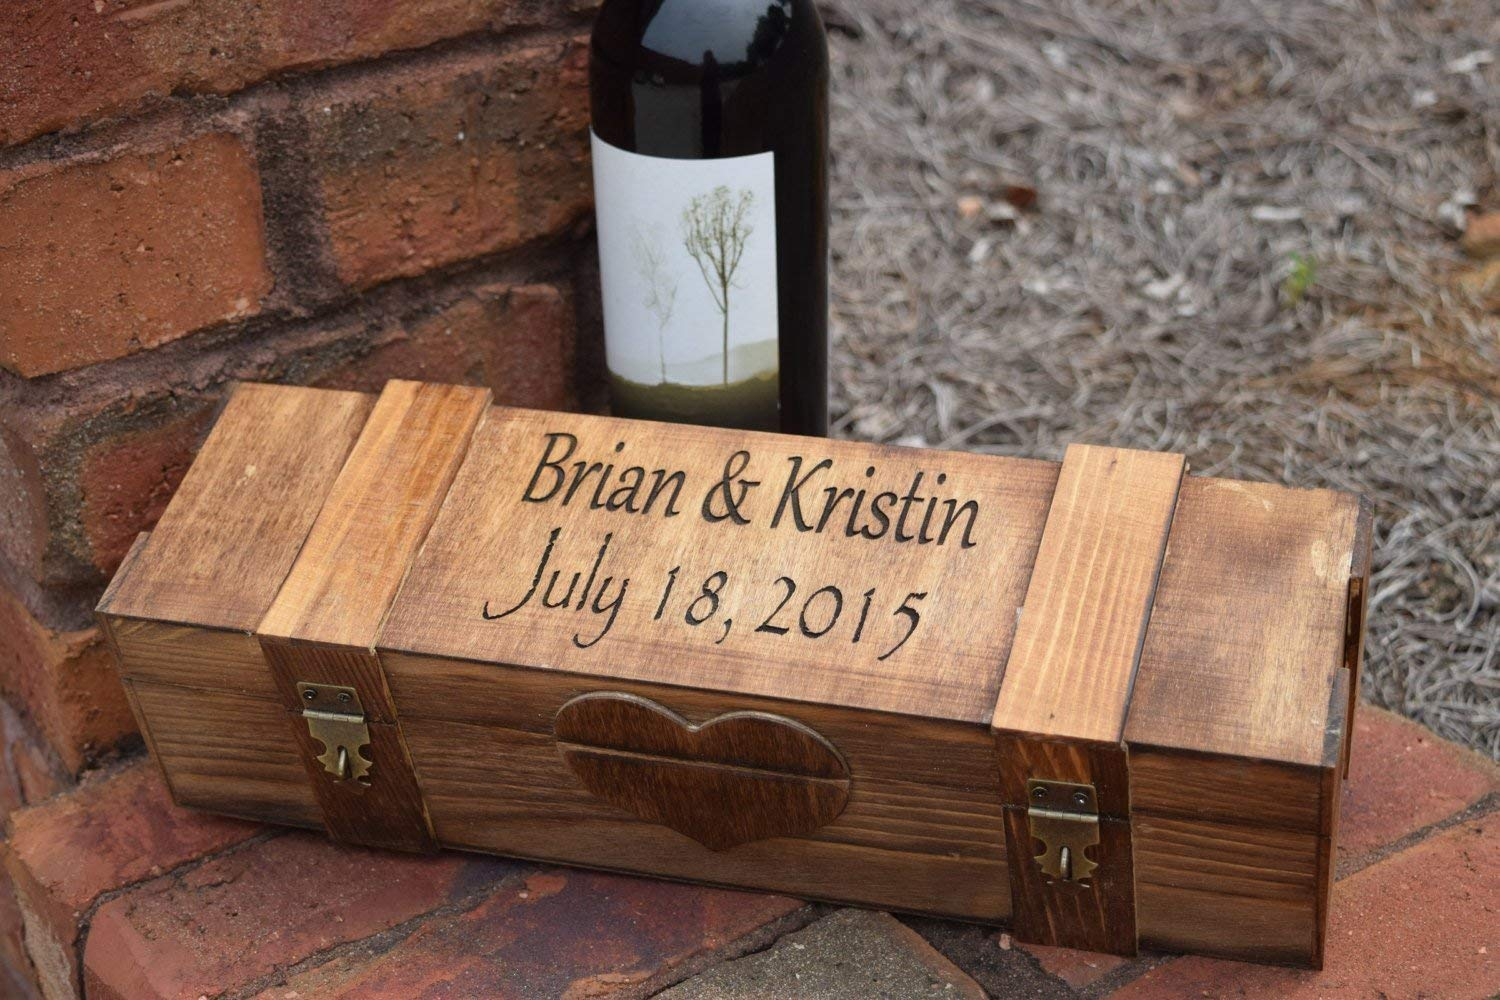 Prosecco 1 Single Bottle Carrier Box for Wine Engravable/® Storage Bottle Gift Presentation Personalised Wine Box Holder Made from Birch Wood with Golden Coloured Clasp /& Hinges Champagne